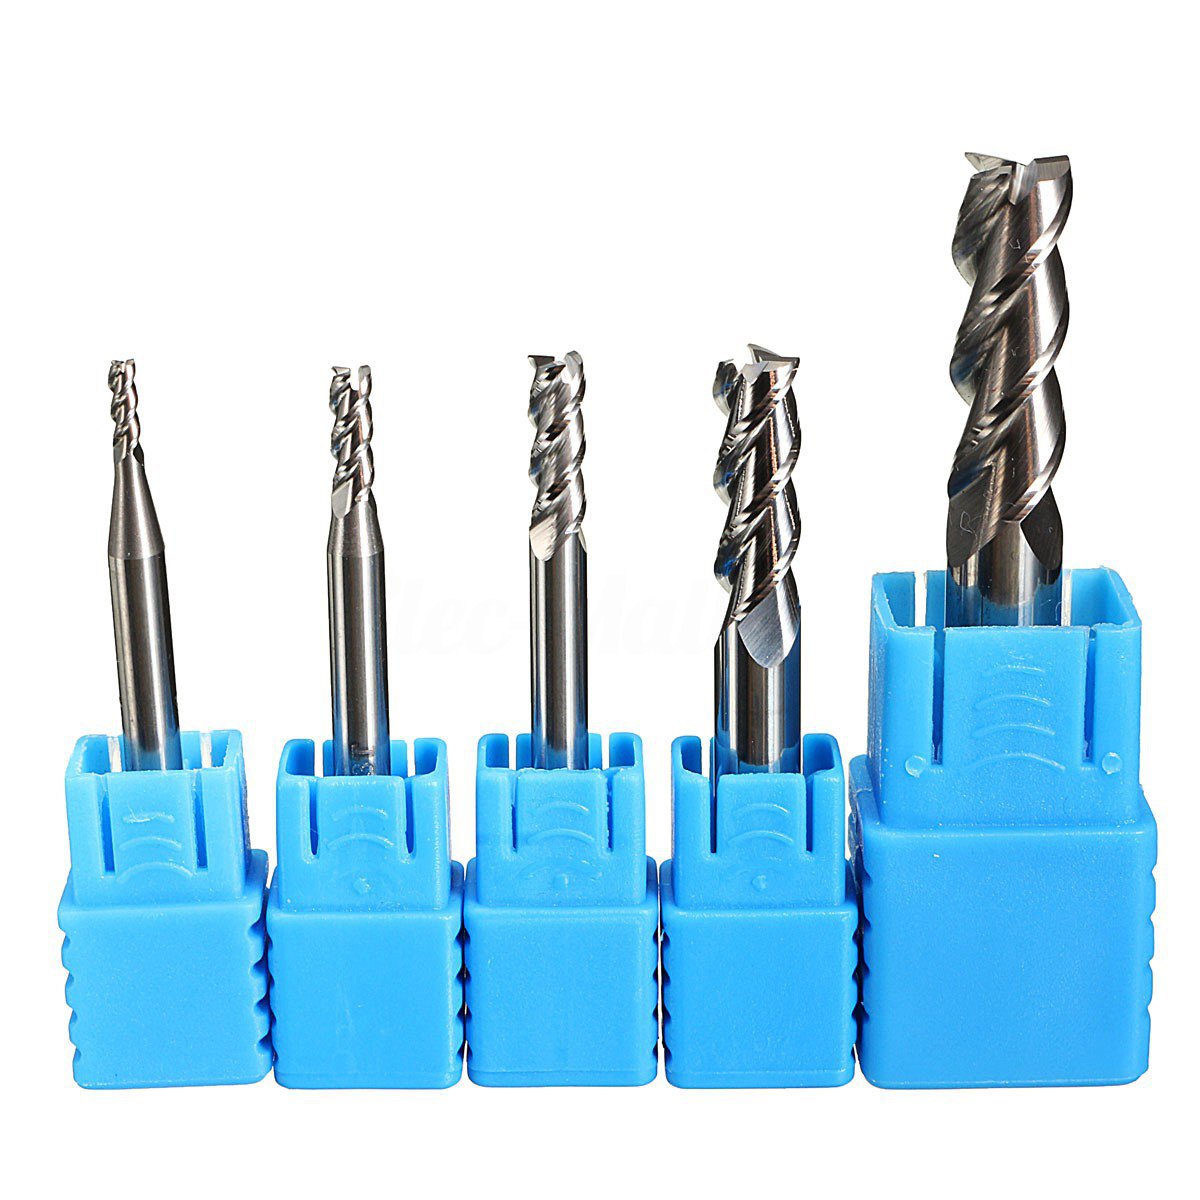 5pcs Tungsten Steel 3 Flute Milling Cutter HRC50 Solid Carbide End Mill 2/3/4/6/8mm For CNC Aluminum